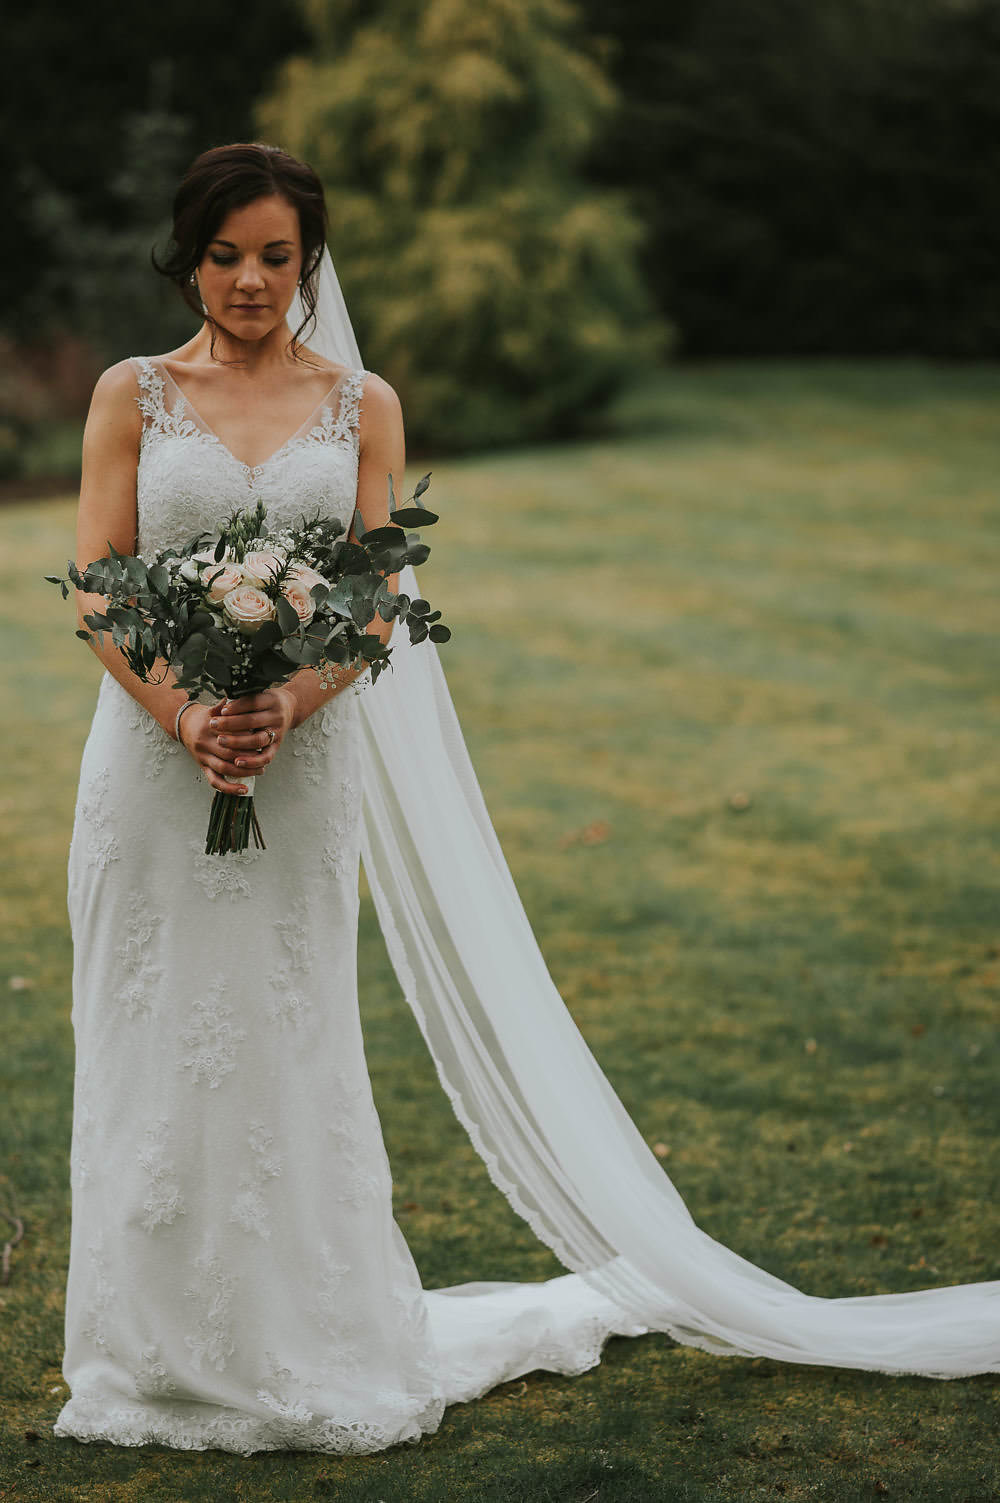 Bride Bridal Lace Sweetheart Neckline Straps Sleeveless Cathedral Veil Bouquet Eucalyptus Macdonald Houston Hotel Wedding Martin Venherm Photography